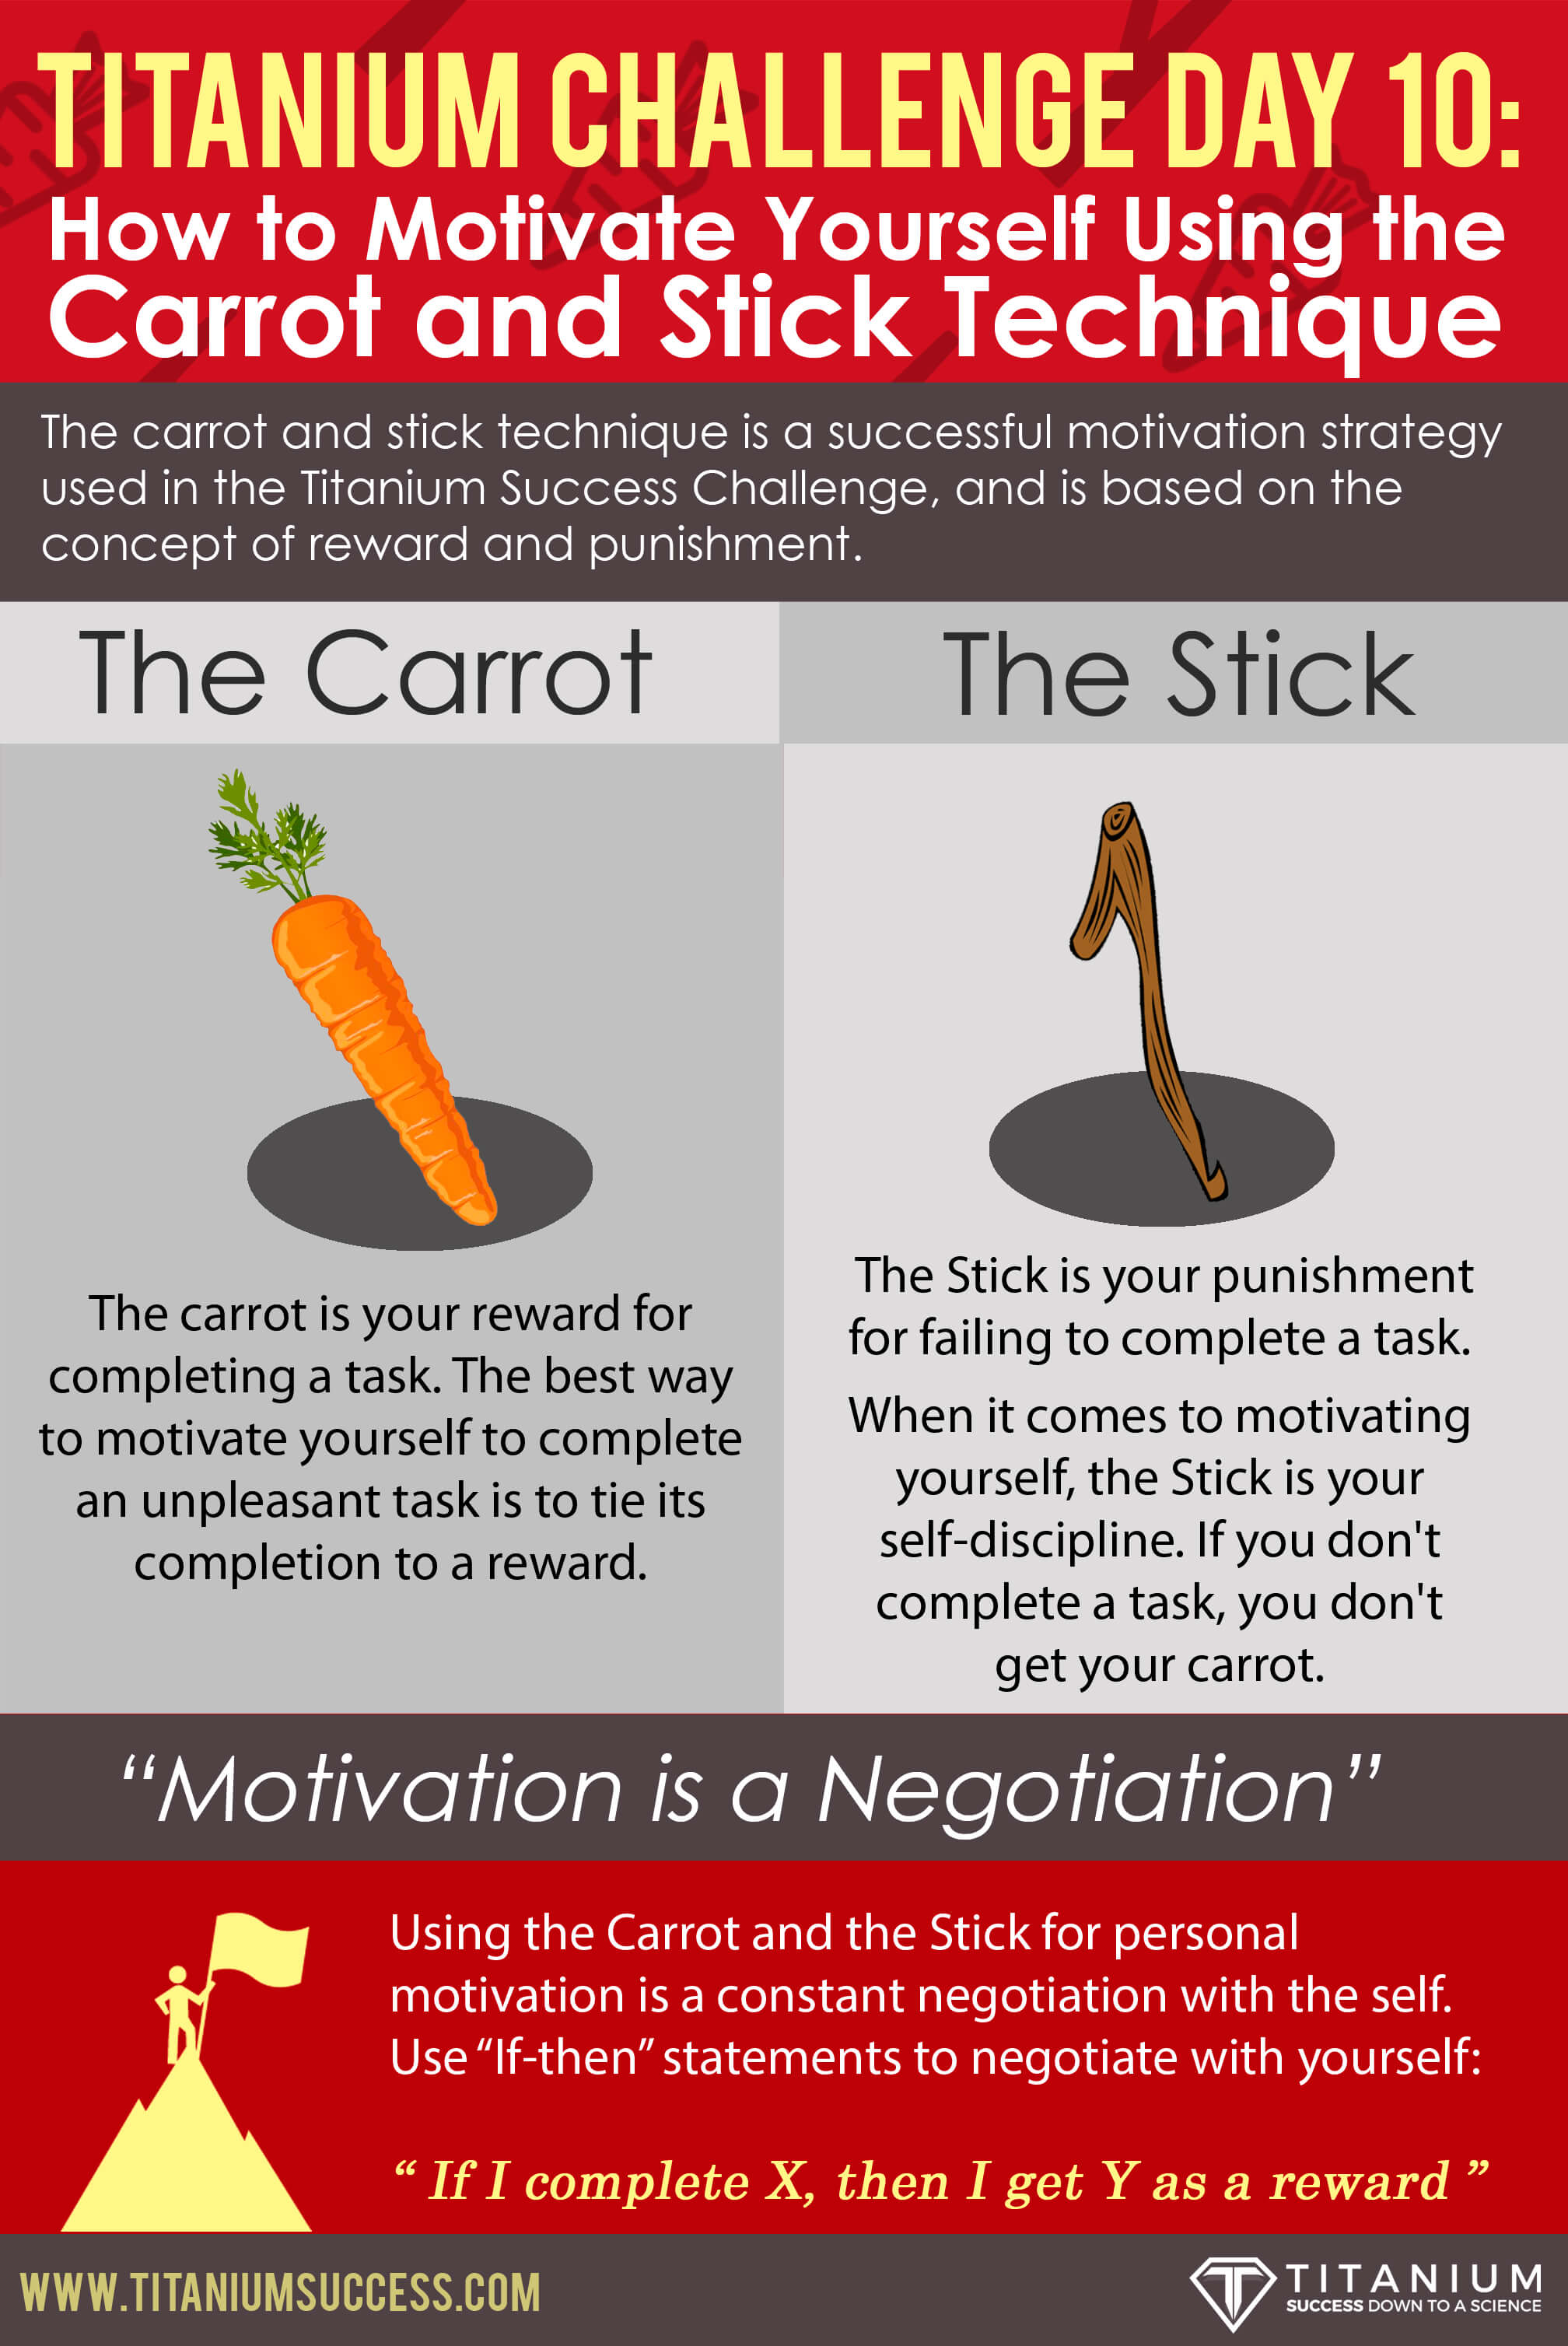 Carrot and Stick Technique Motivation Infographic - TS